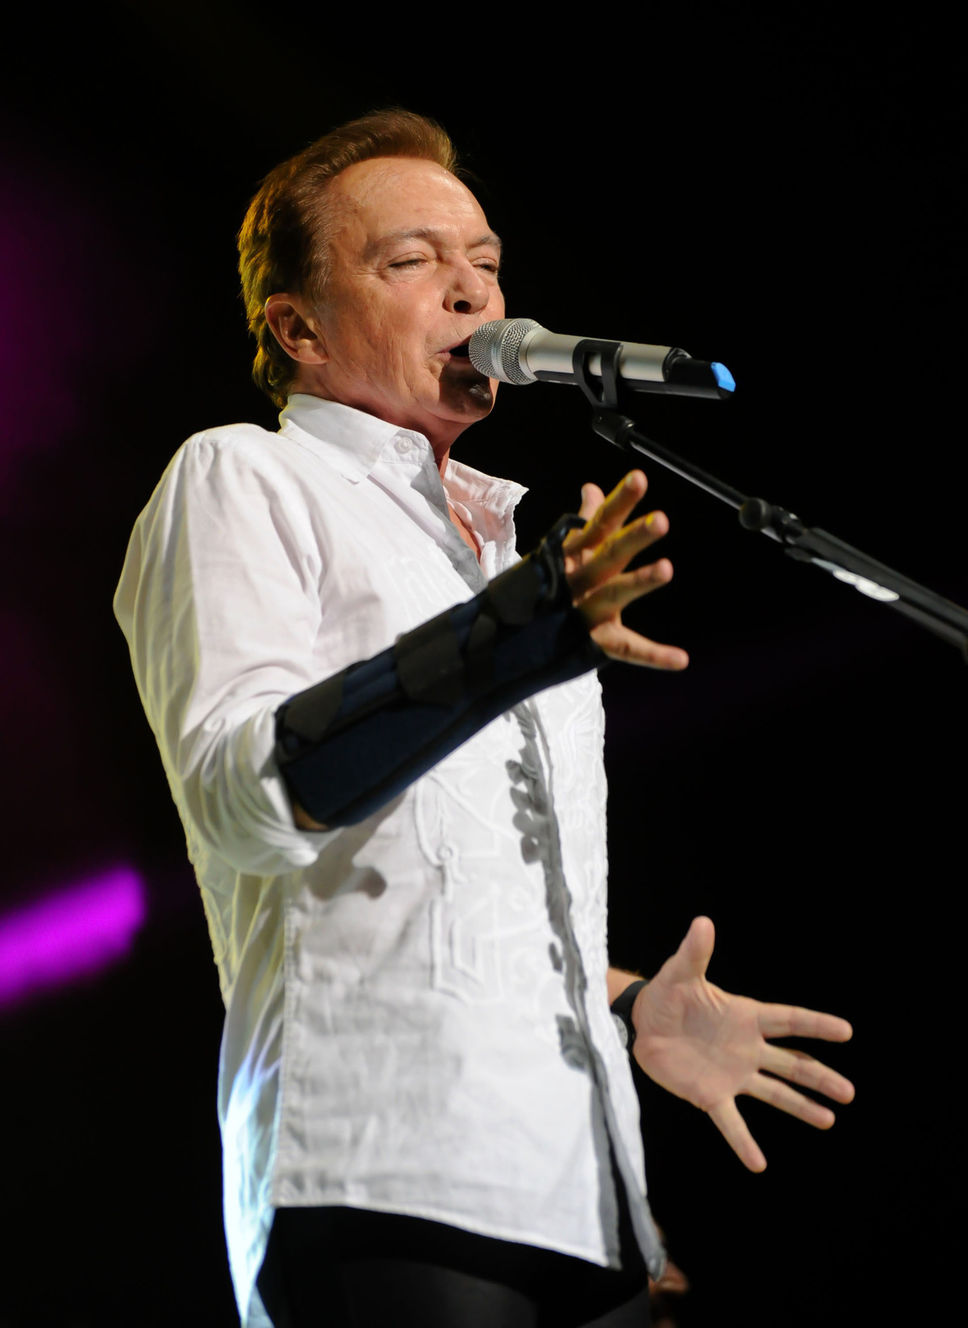 deces-david-cassidy/4e2dedae-5e4b-4936-b311-c0d96dcafa74-jdx-no-ratio-web-jpg.jpeg